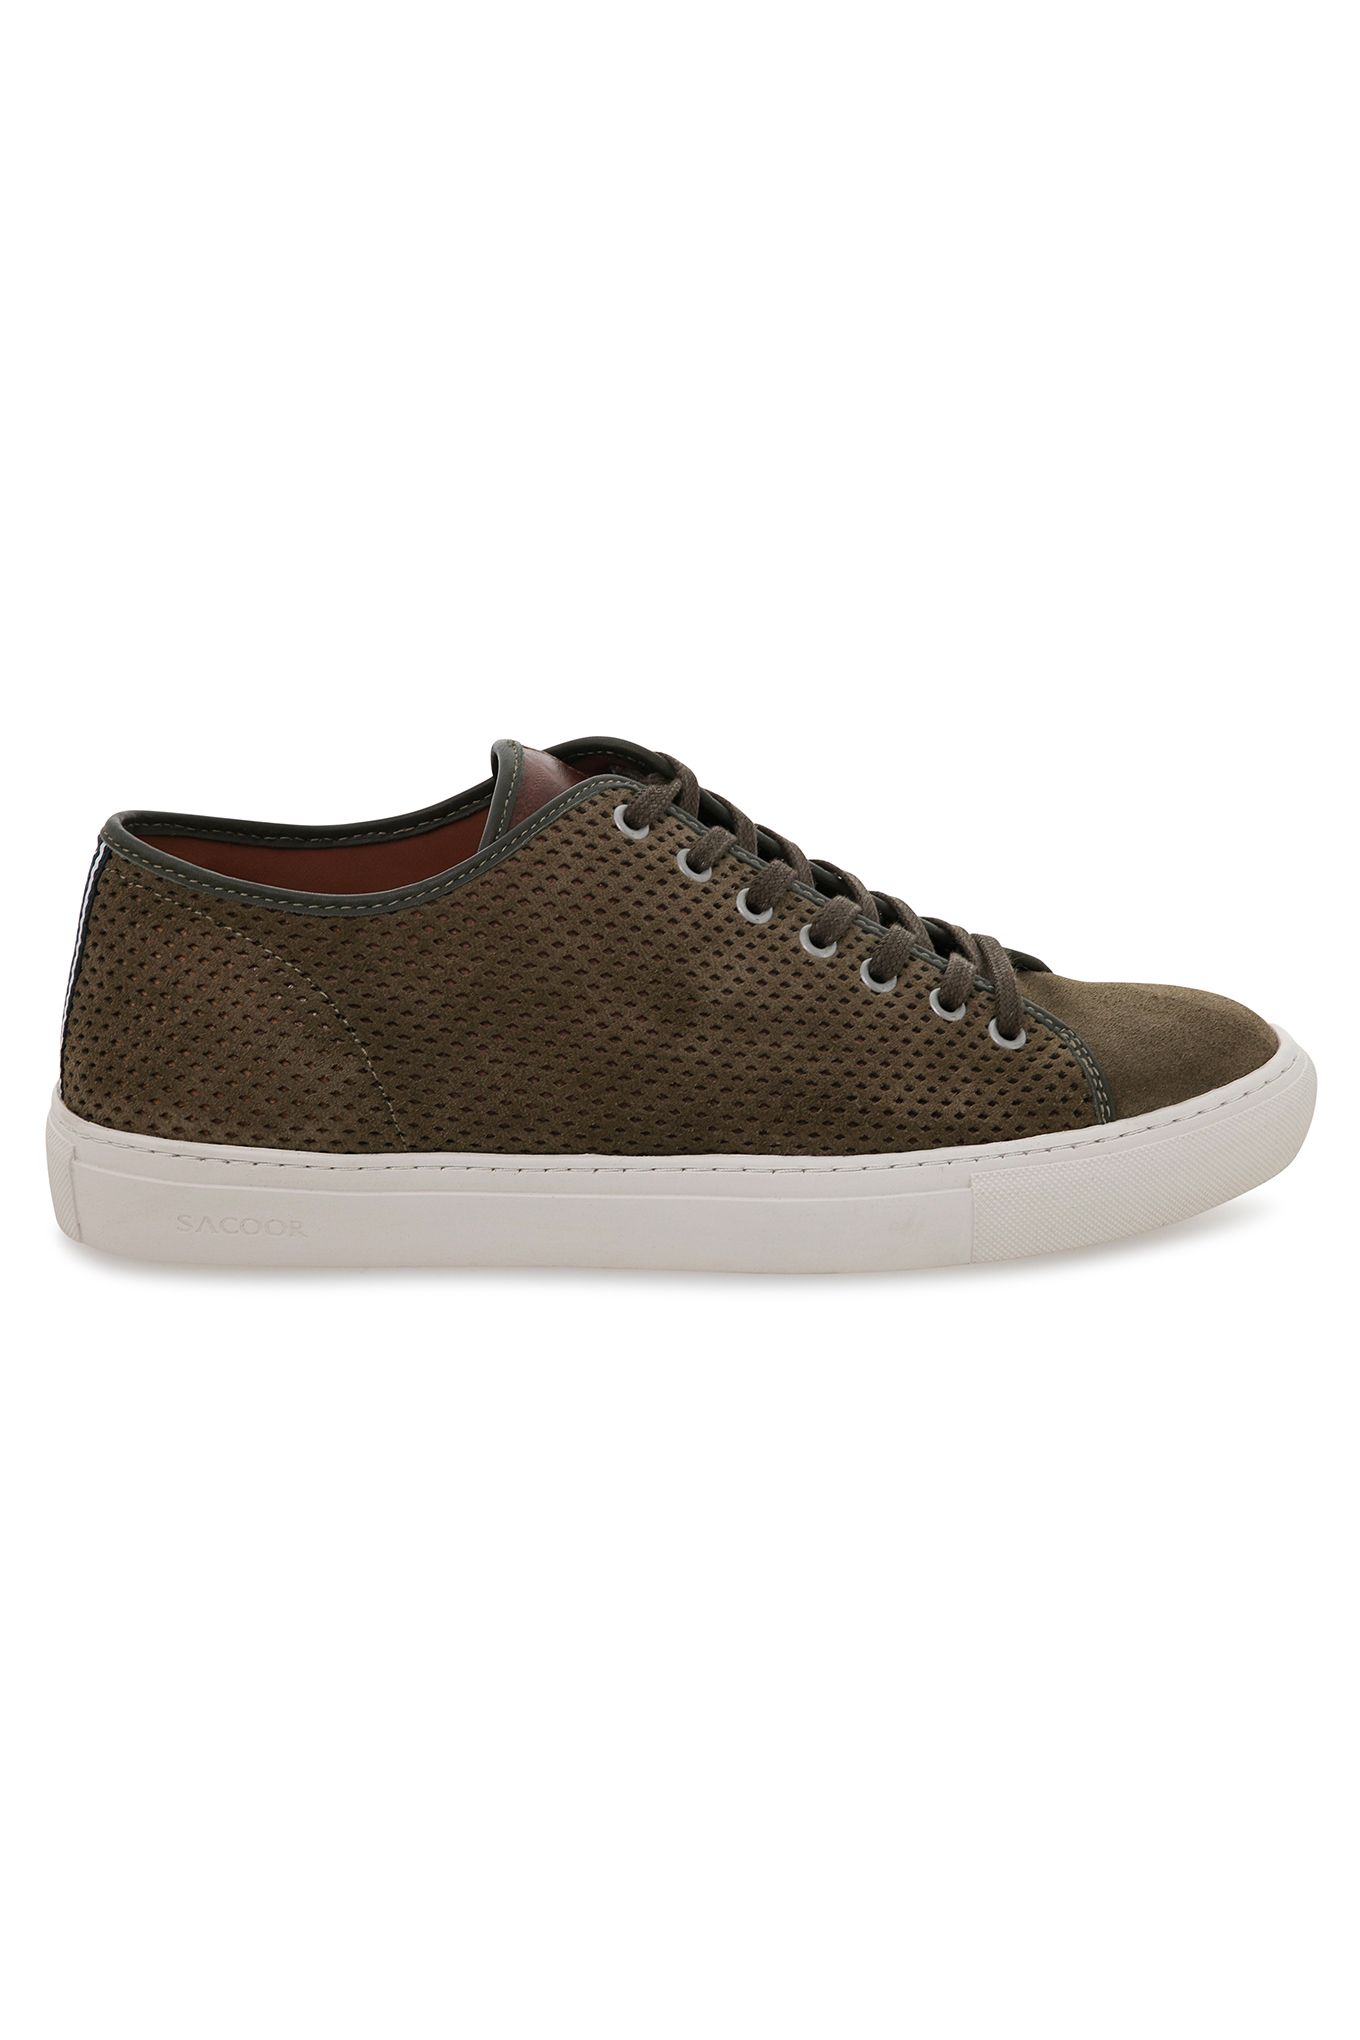 Tennis Khaki Casual Man